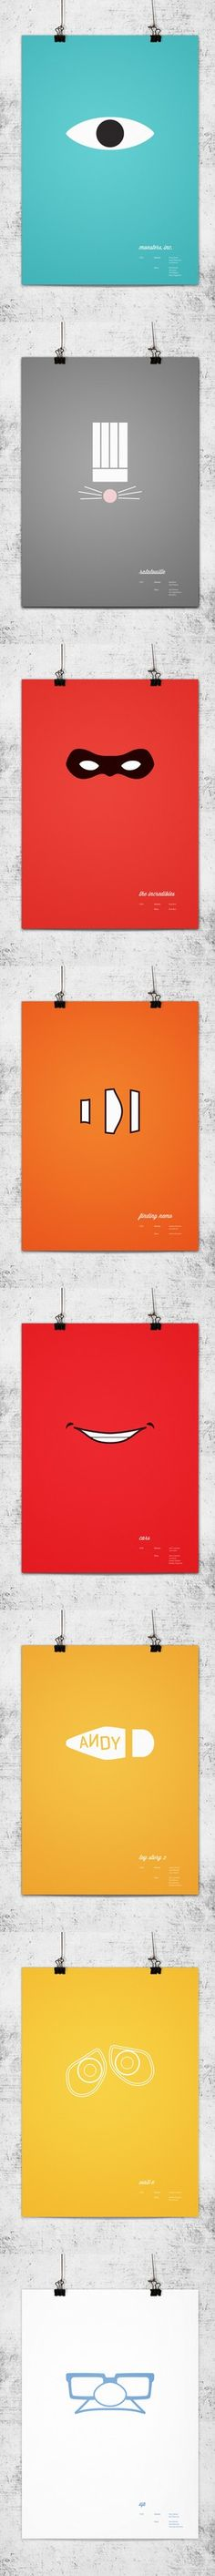 Can you guess the Pixar movie from these minimalist posters?